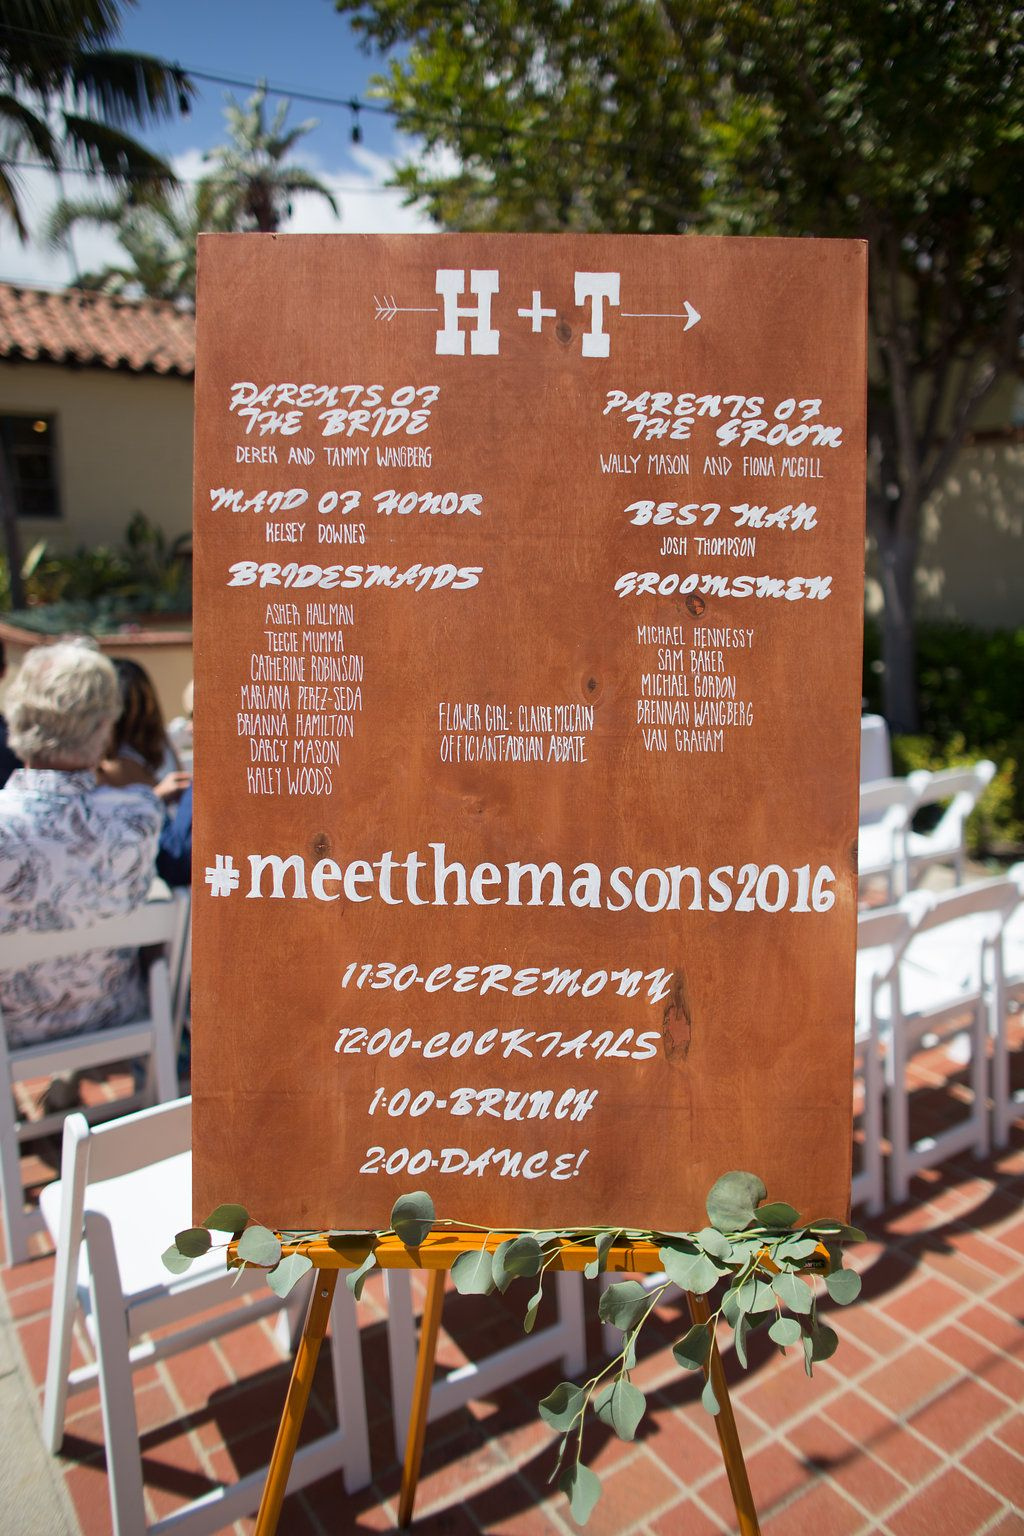 signage to let guests knows the details of the event in lieu of